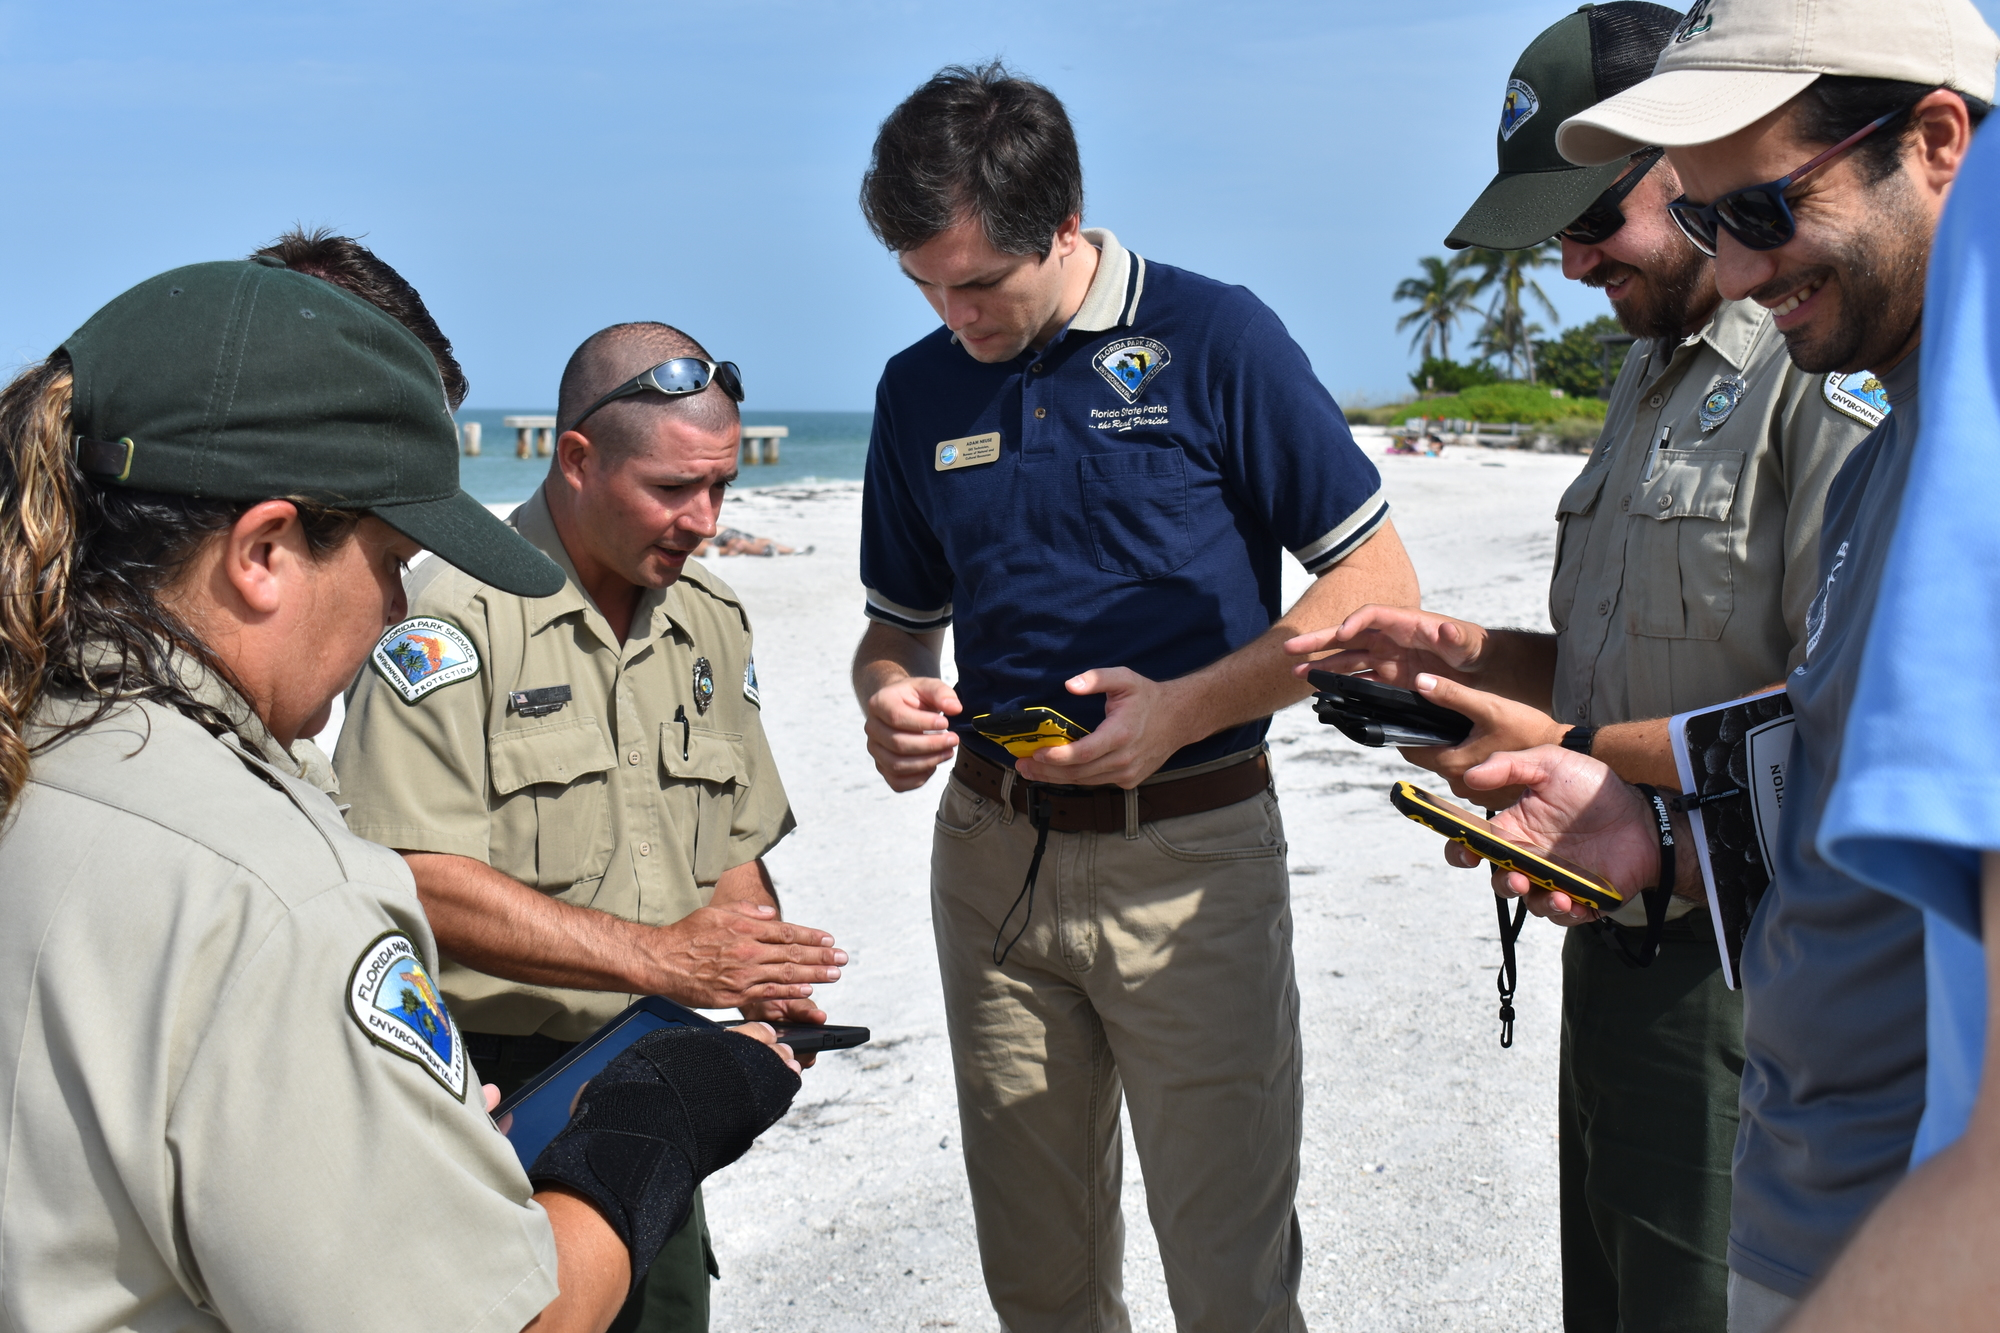 Standing on a beach, GIS technician shows park staff how to use mobile app to survey sea turtle nests.